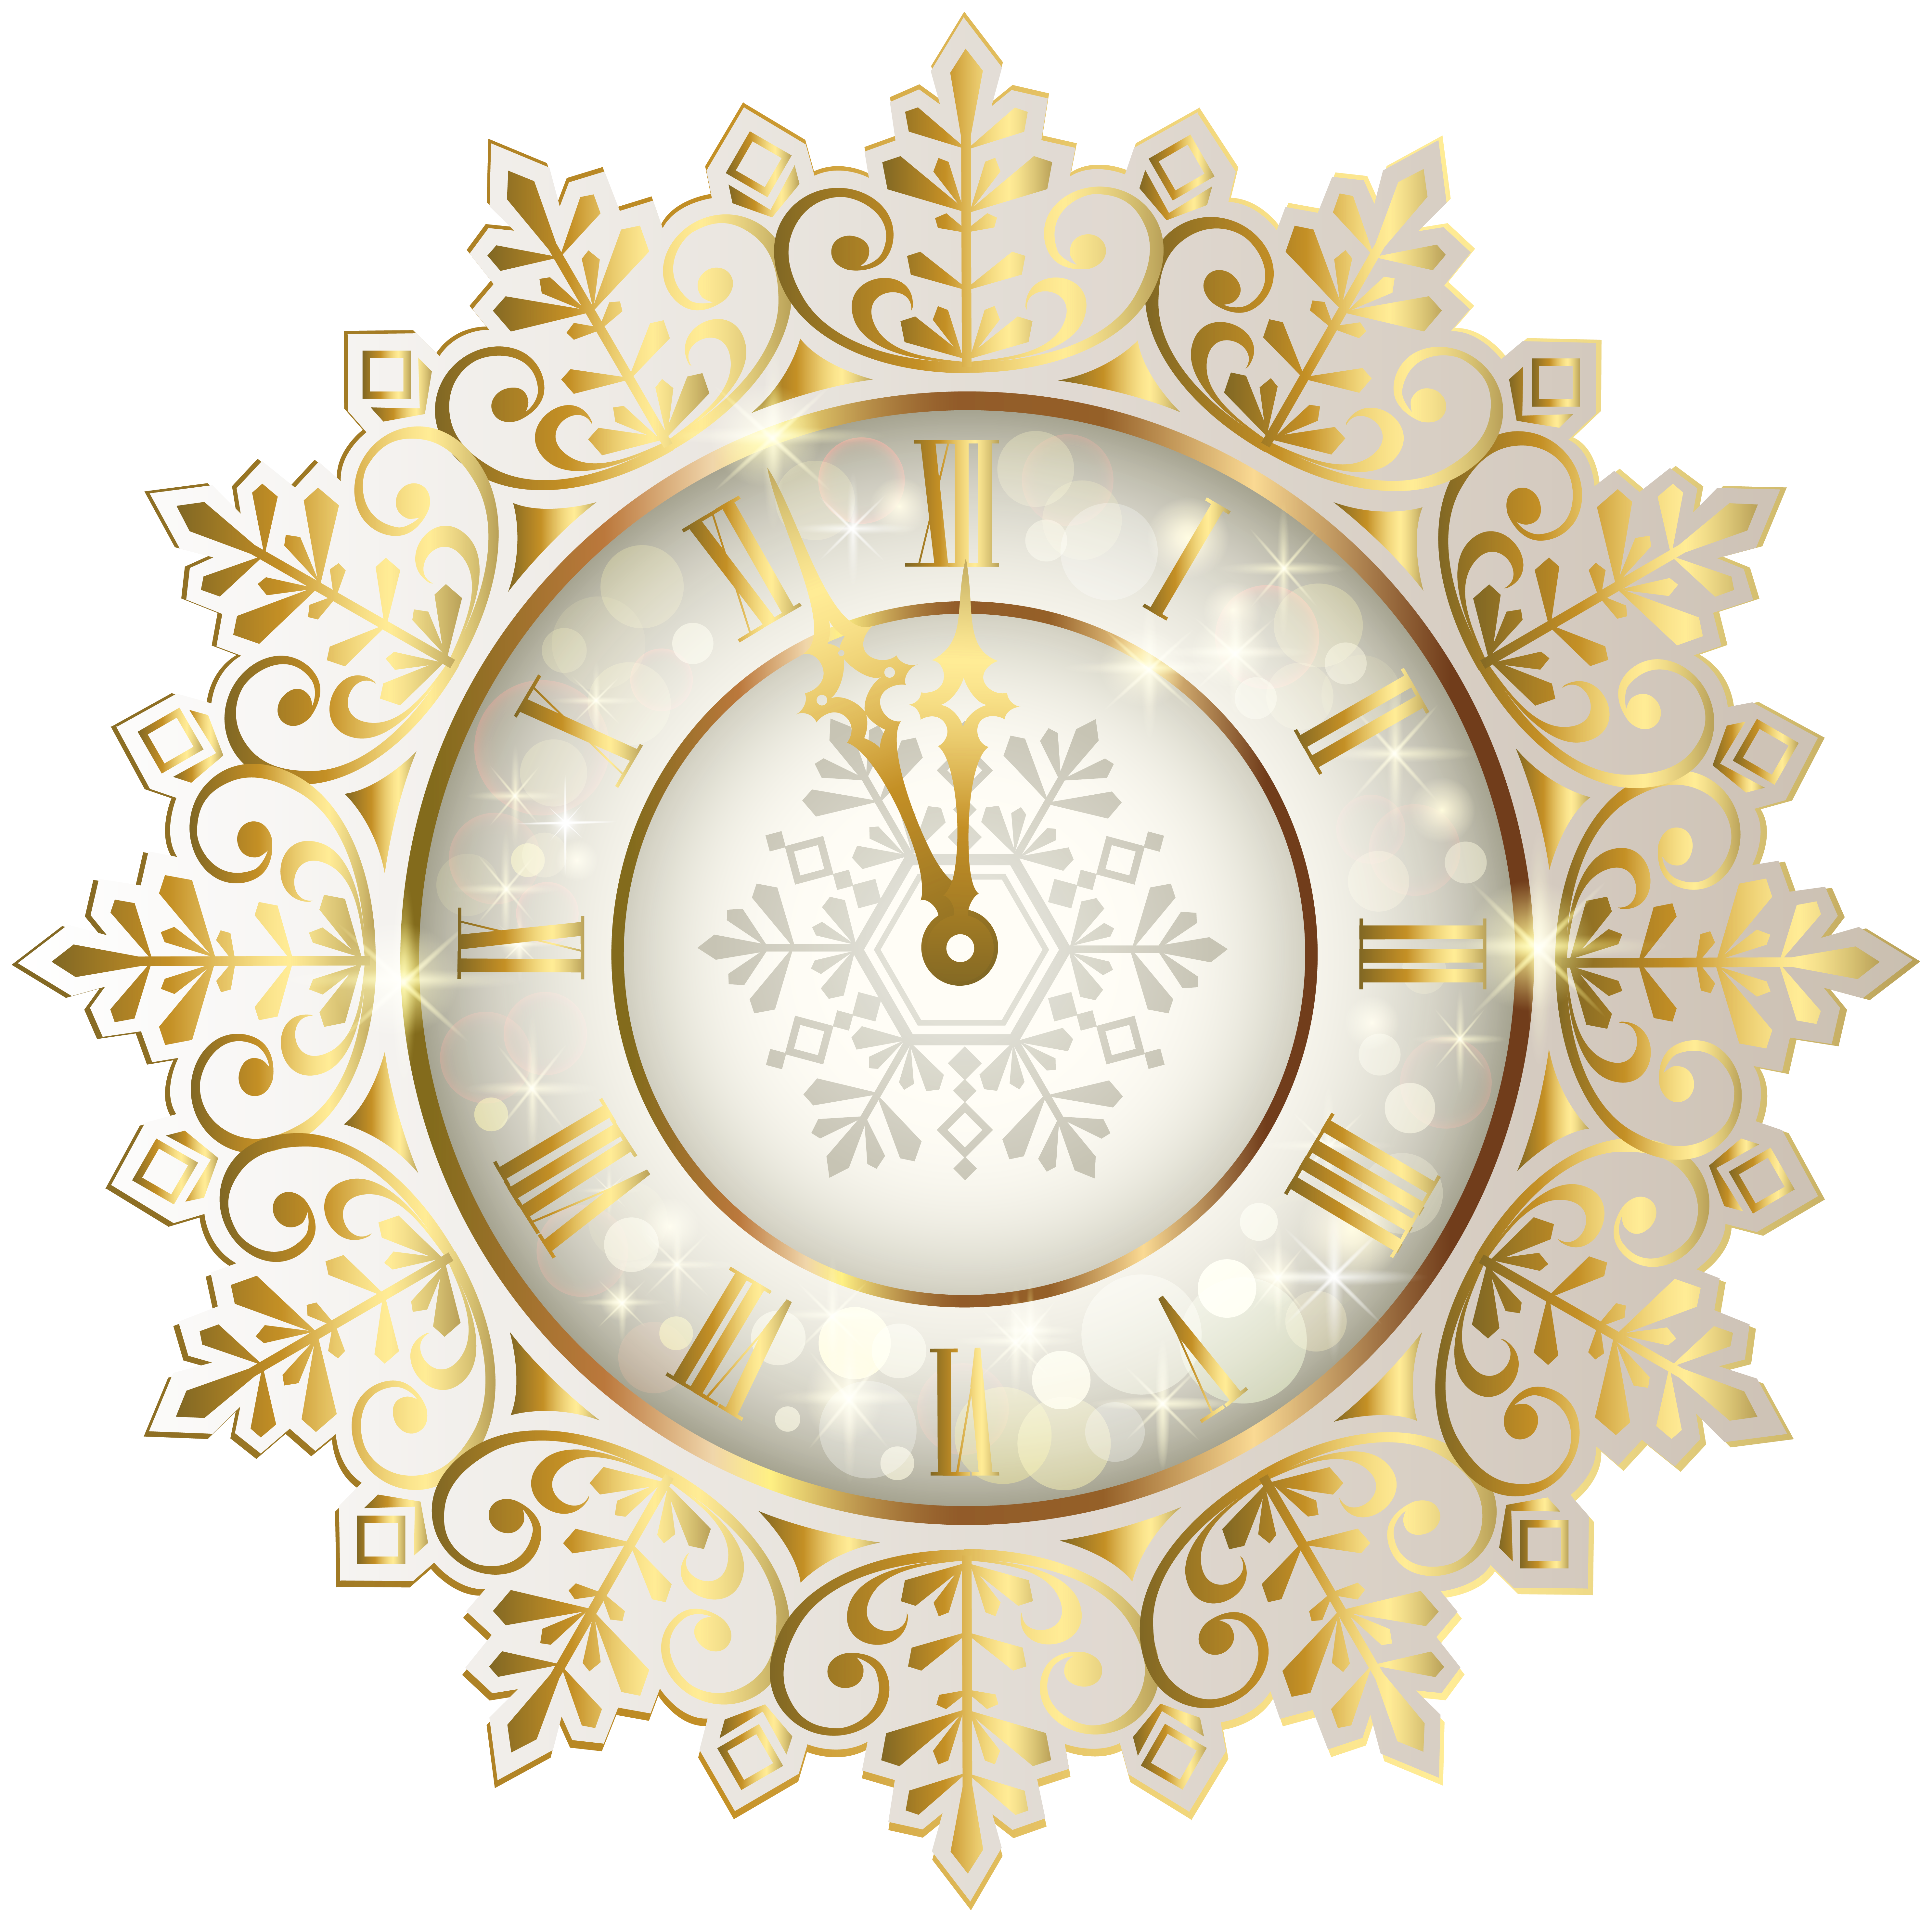 Clocks clipart new year. Gold clock png image